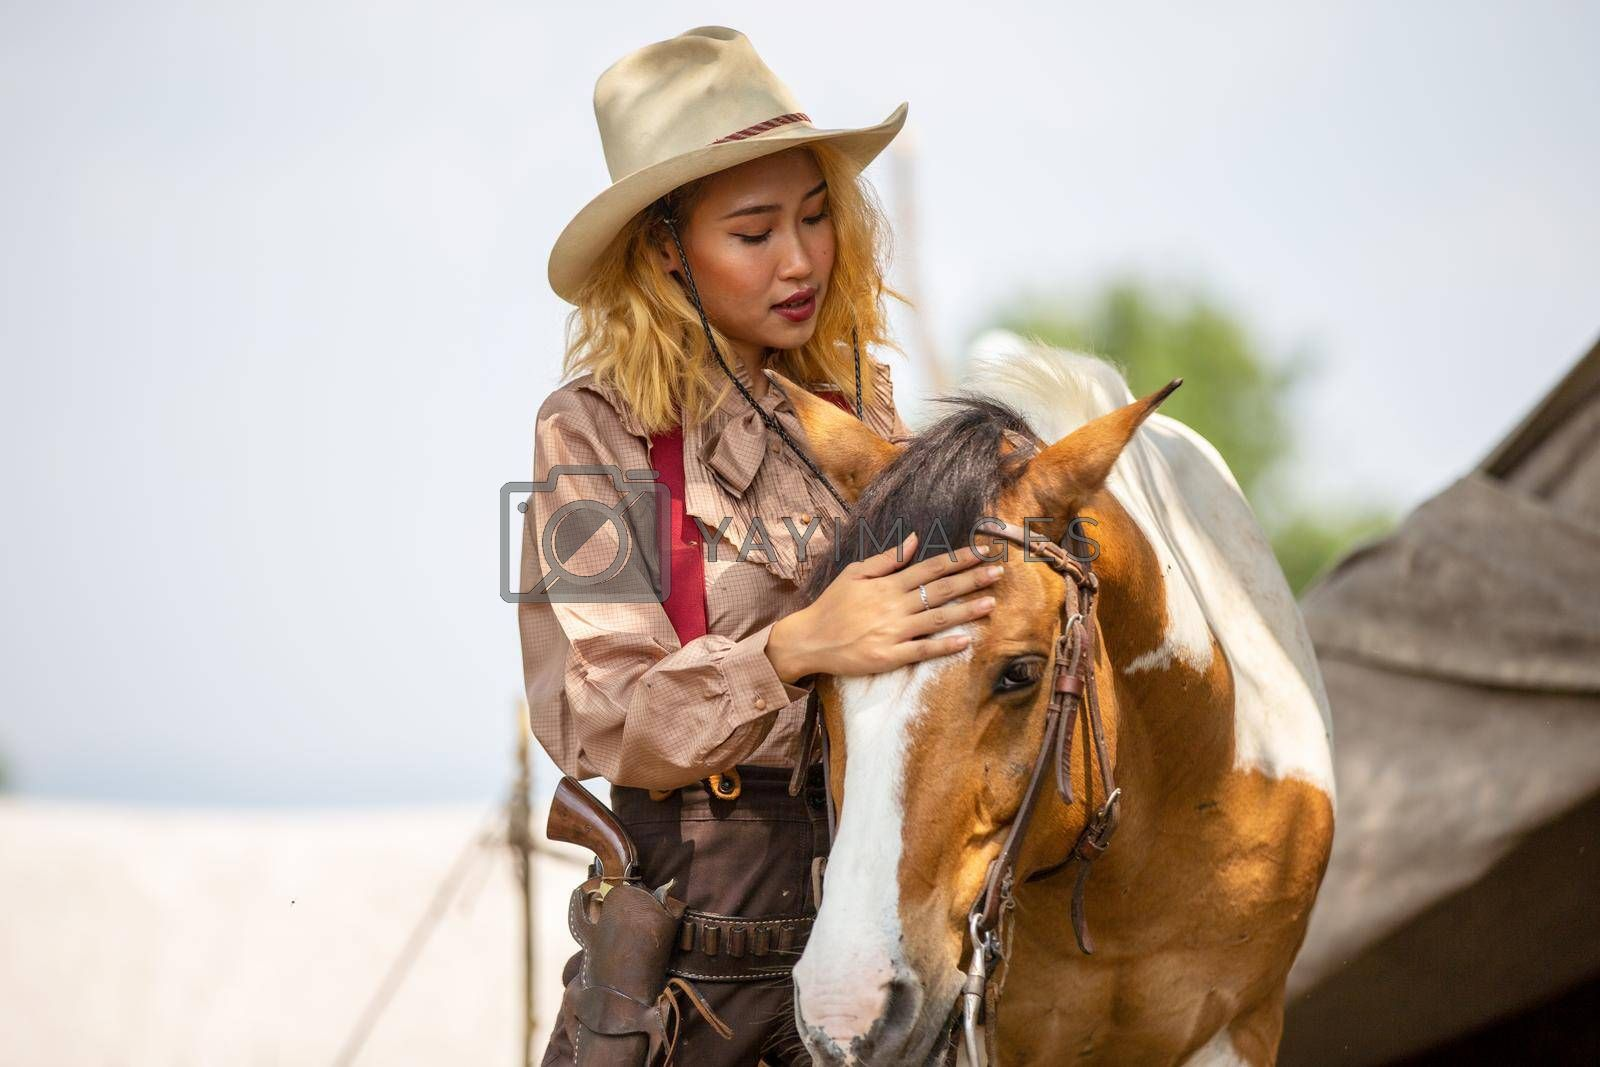 Cowgirl standing by horse at outdoor.